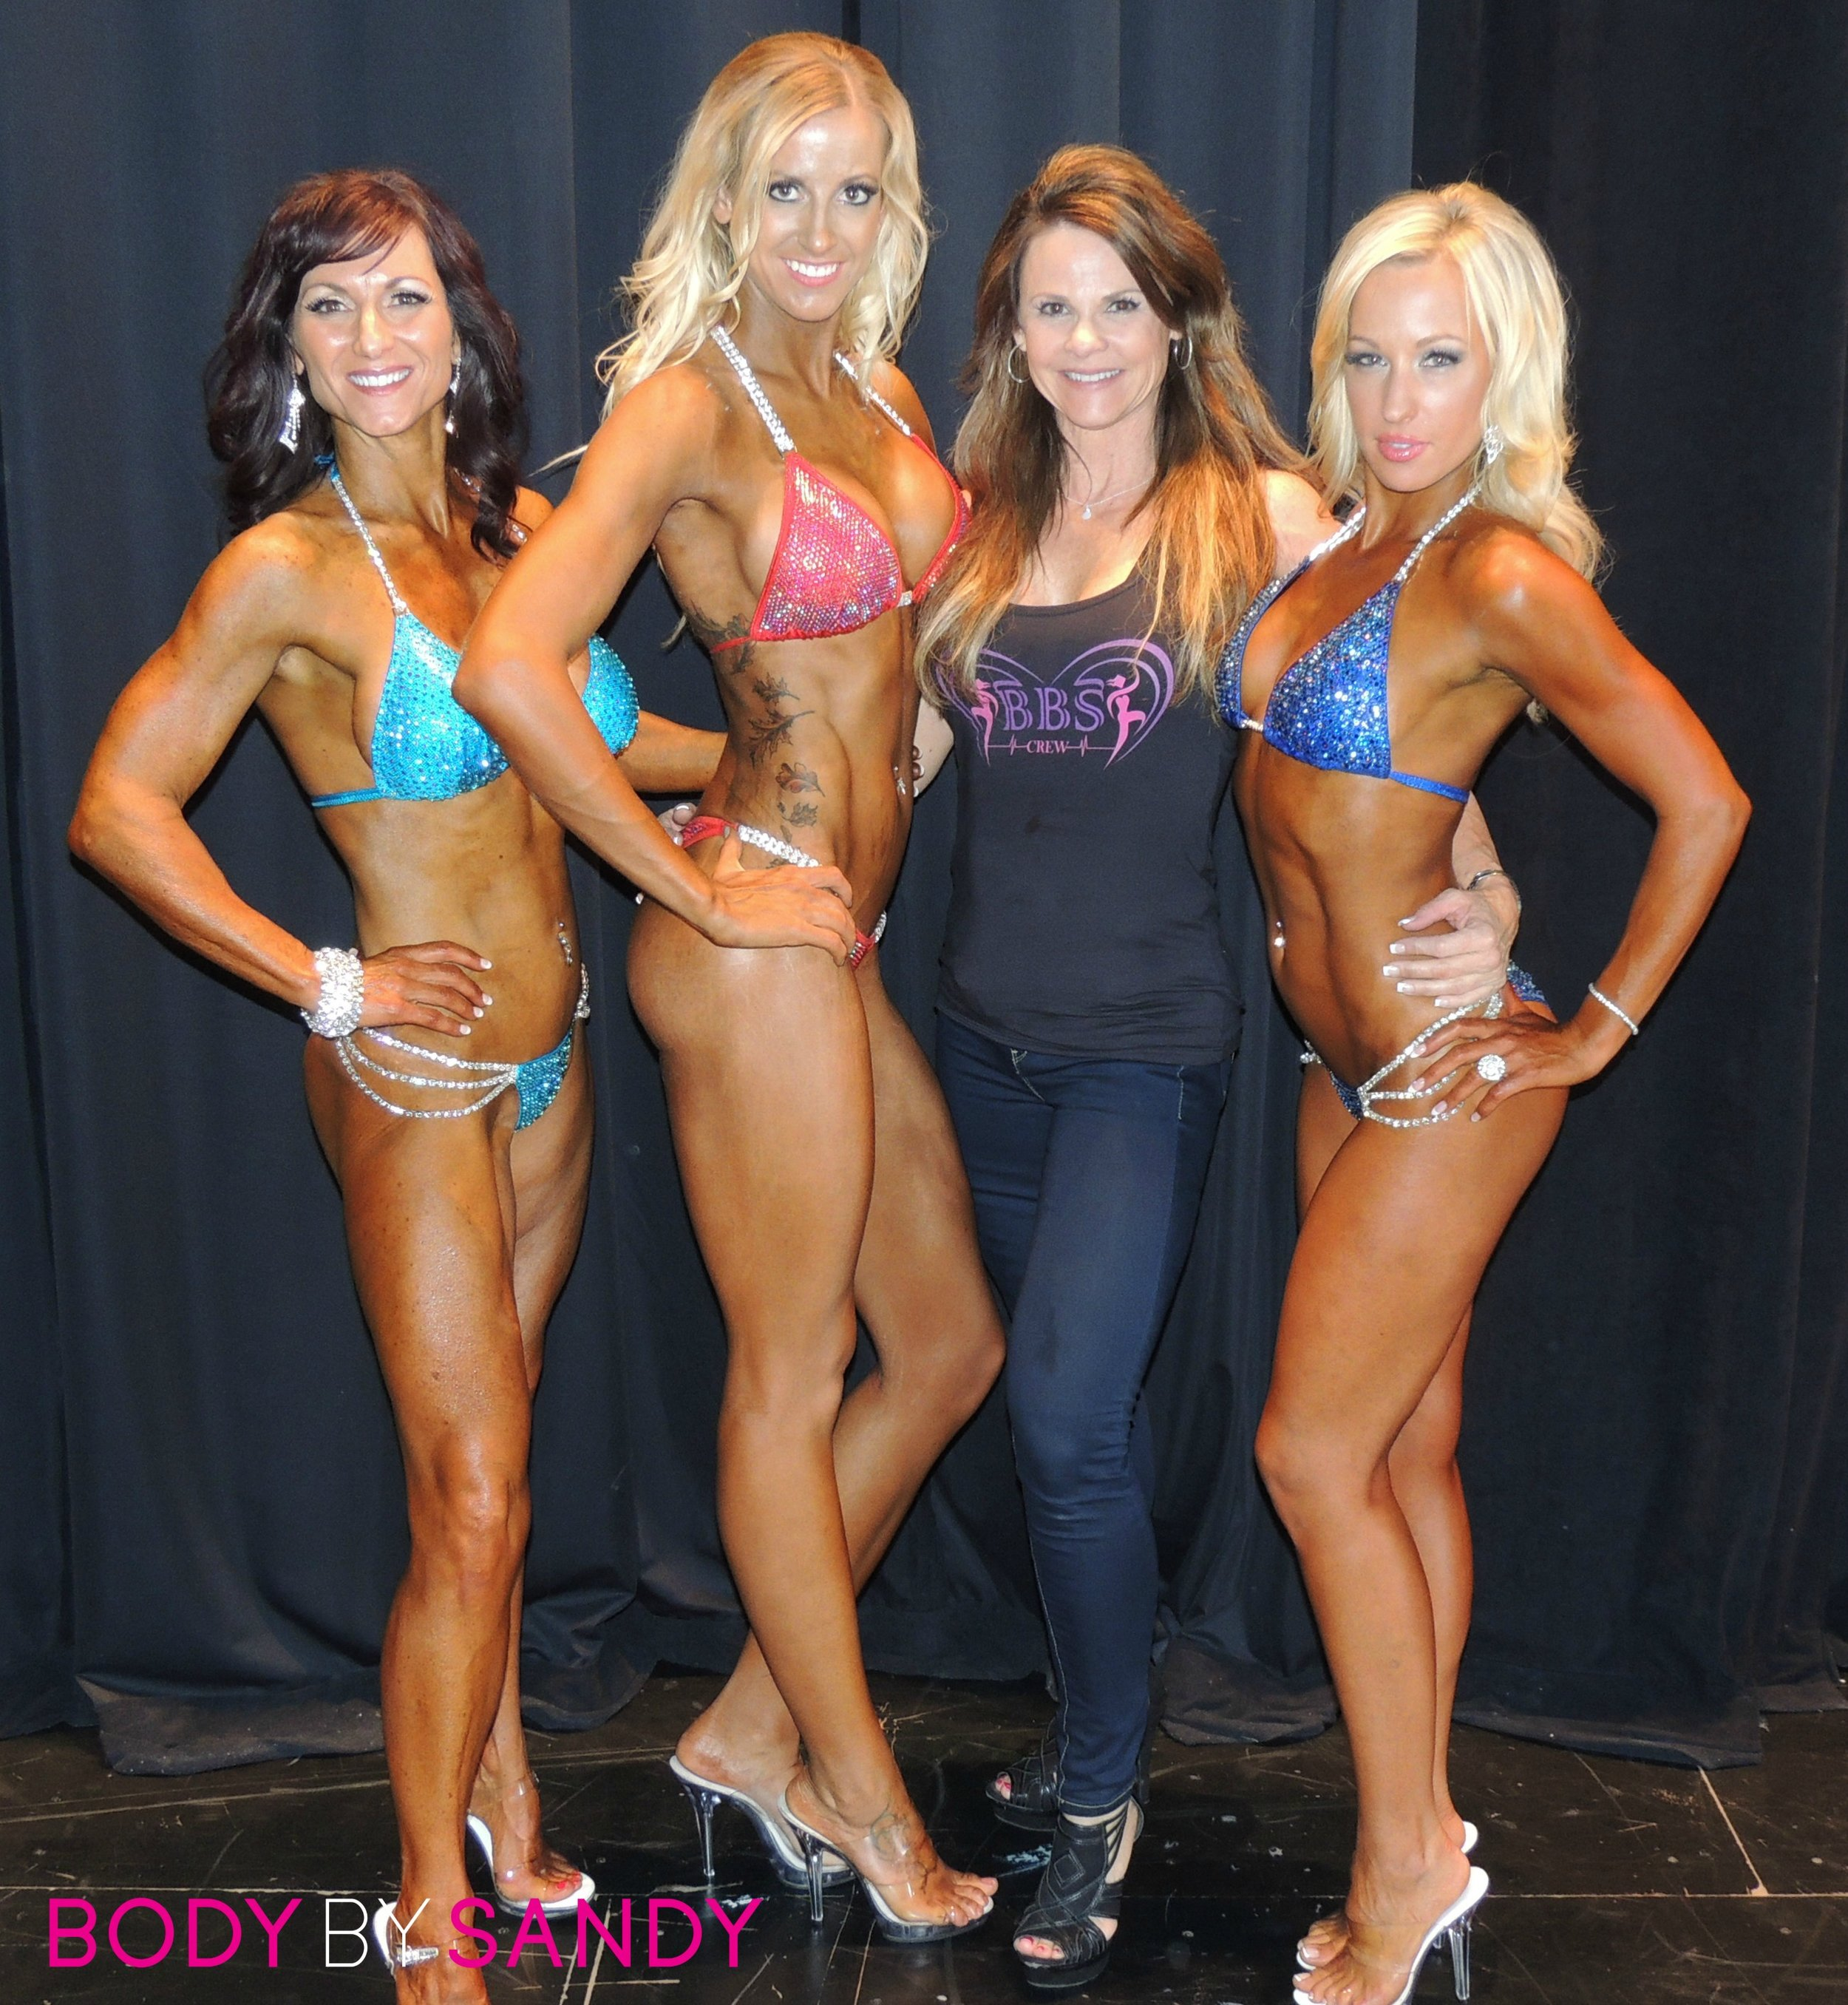 2015 NPC Warrior Classic-Me with the girls backstage.jpg